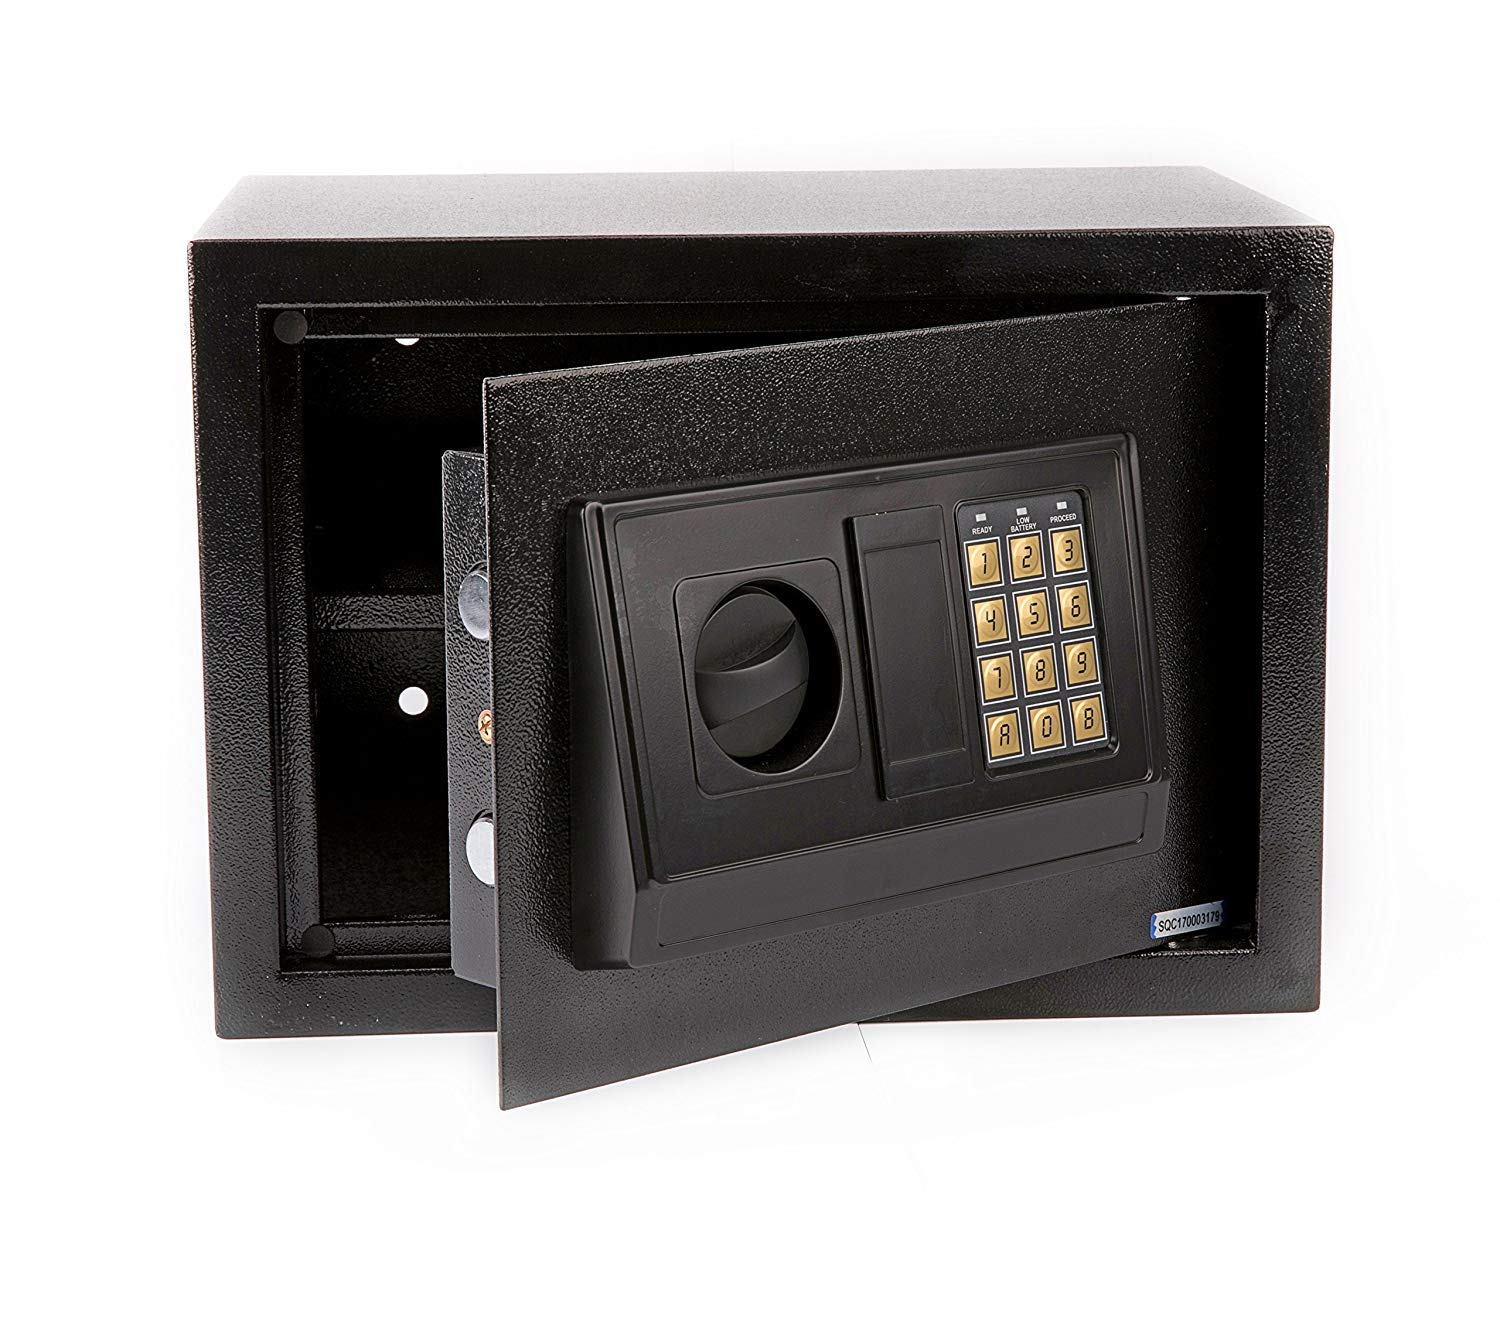 Windaze Electronic Digital Safe Box Keypad Lock Home Office Hotel Hide Cash Gun Valuables, 0.77 Cubic Feet by windaze